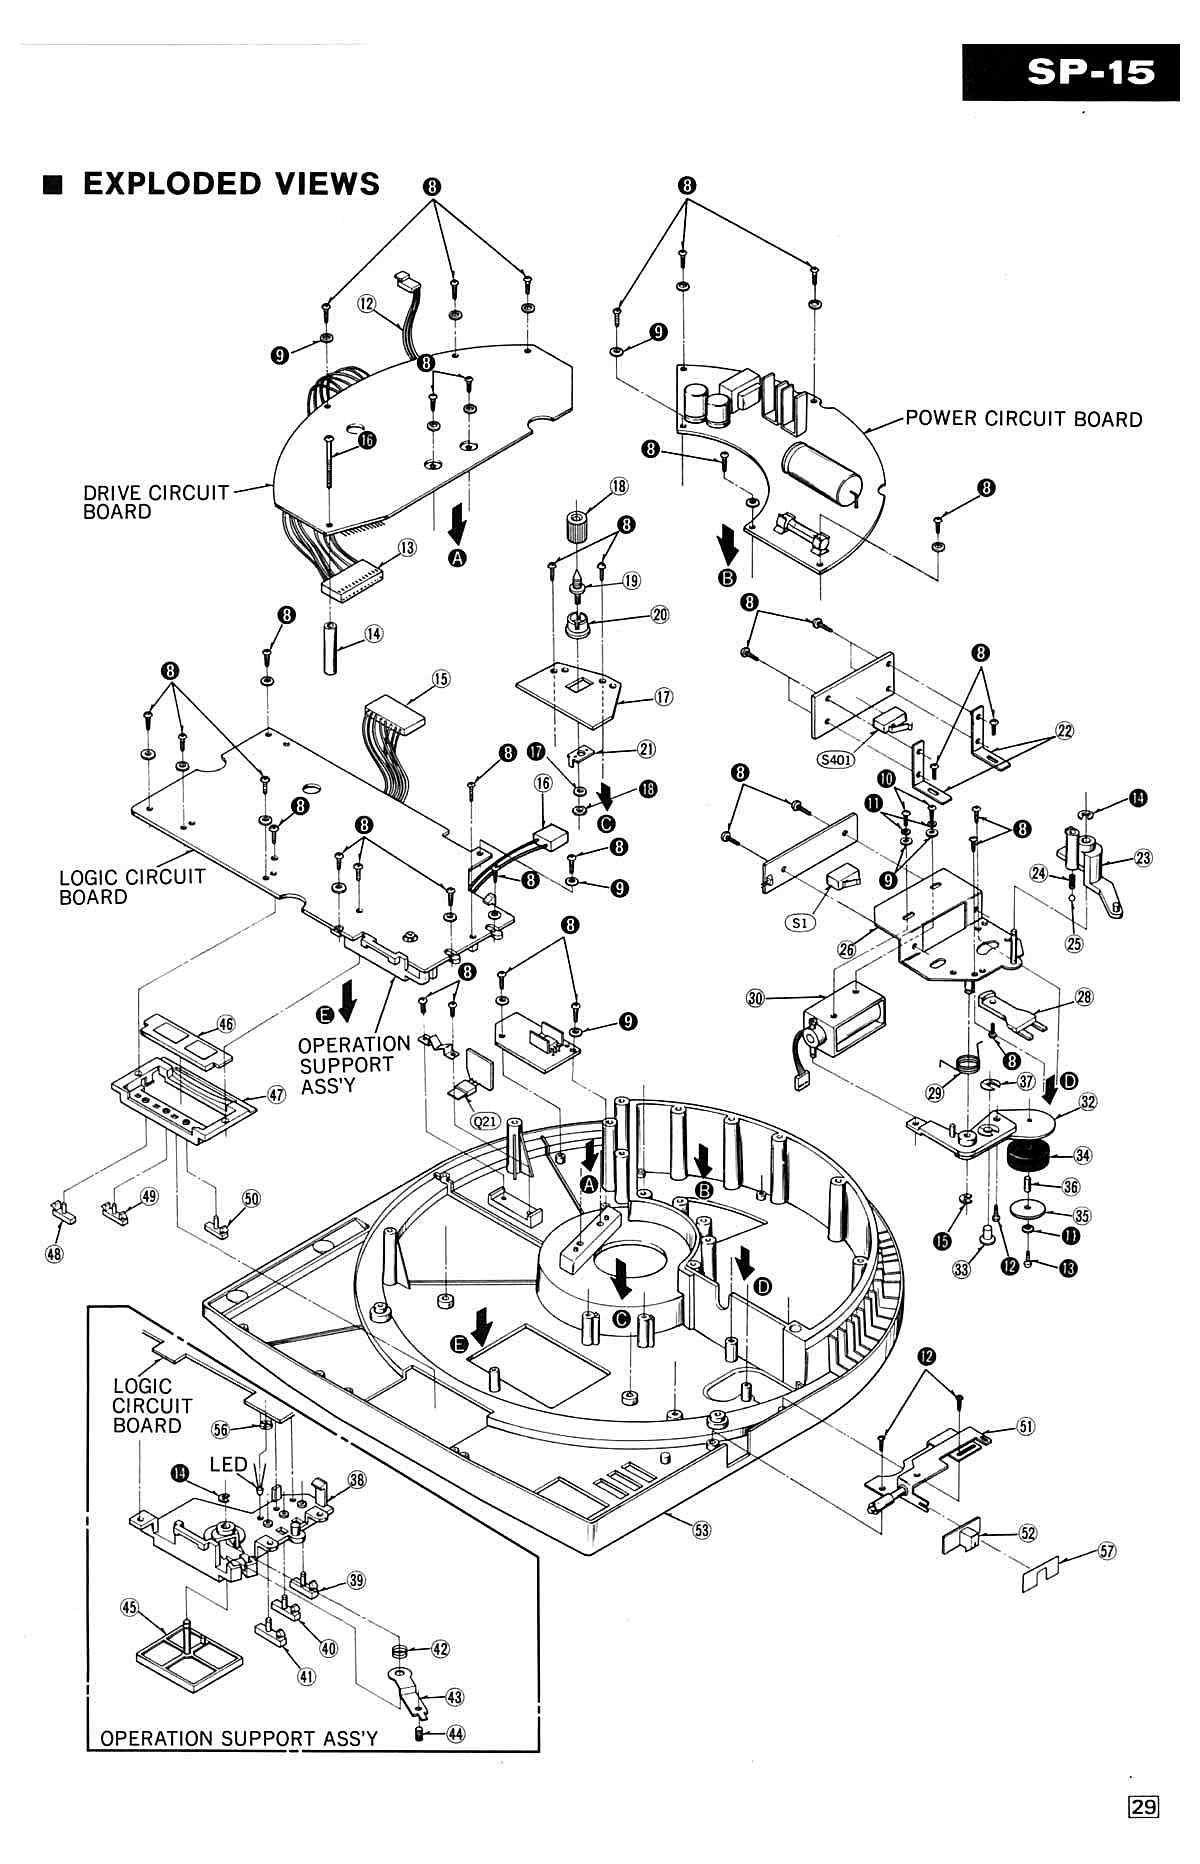 Technics 1210 Exploded Diagram